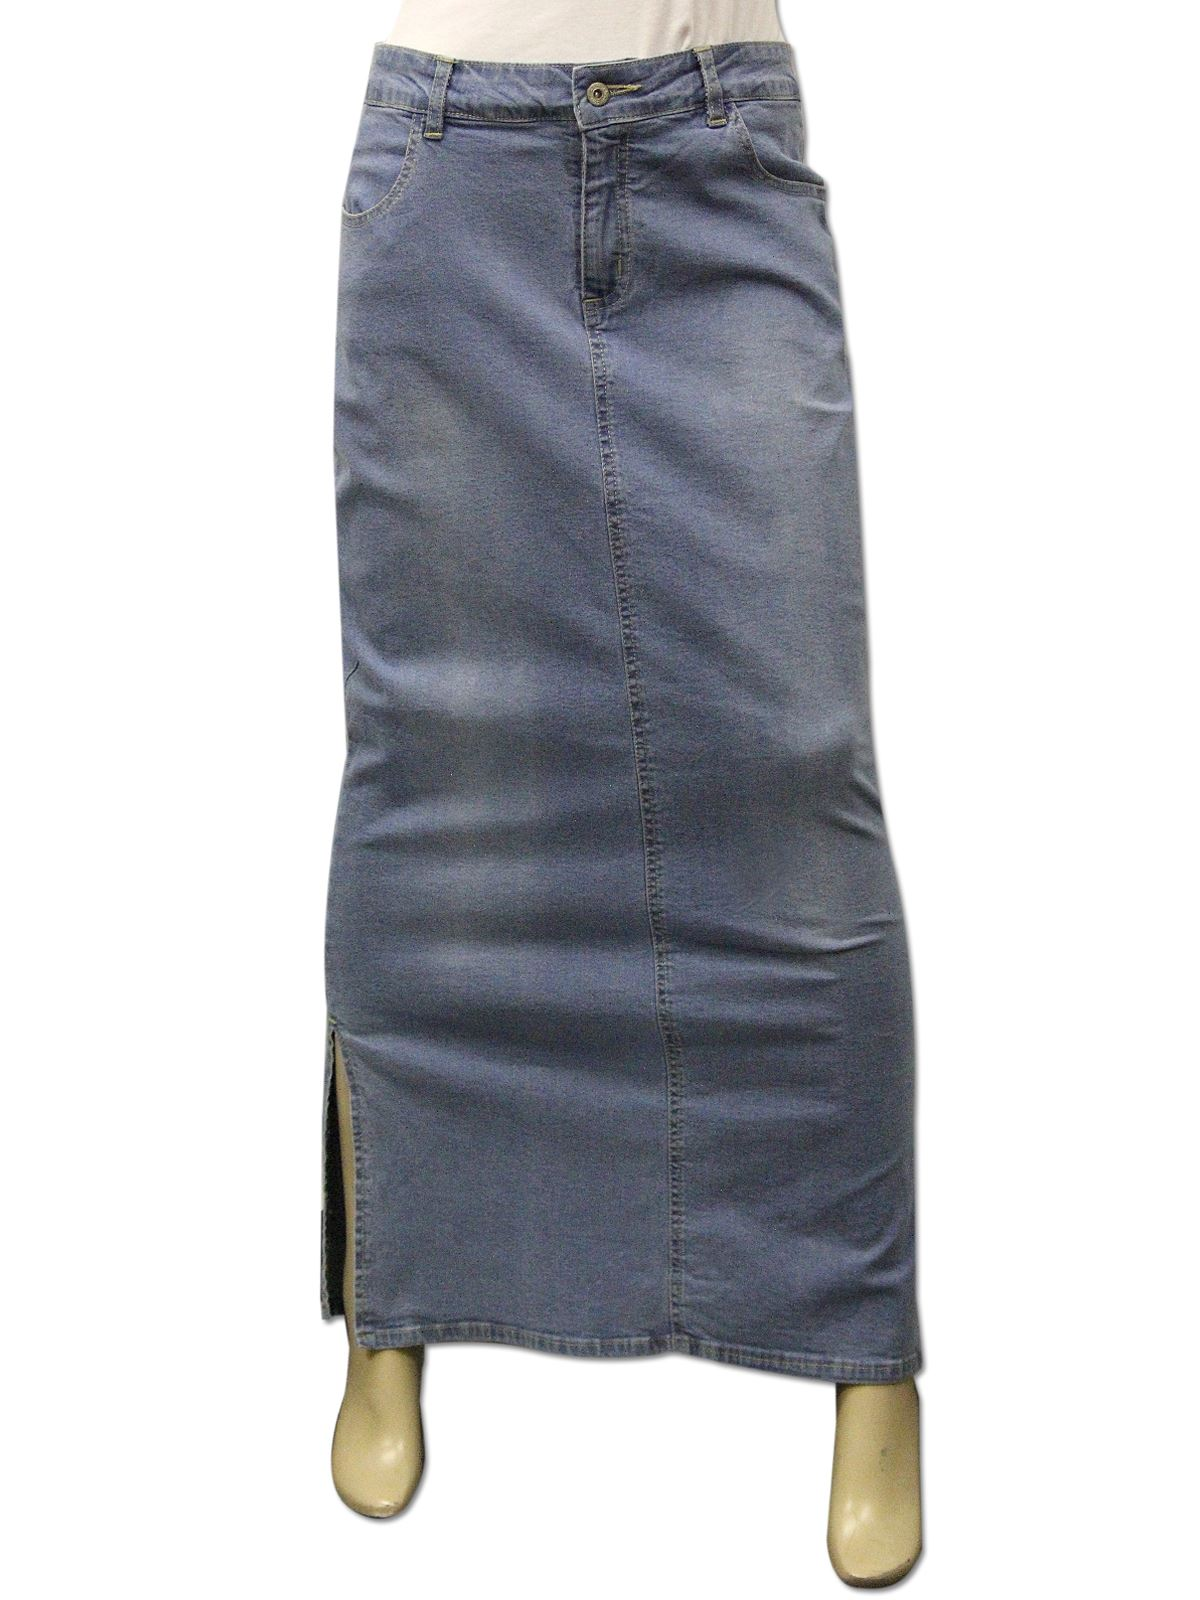 Clove-long-ankle-length-maxi-stretch-denim-pencil-skirt-plussize-16-18-20-22-24